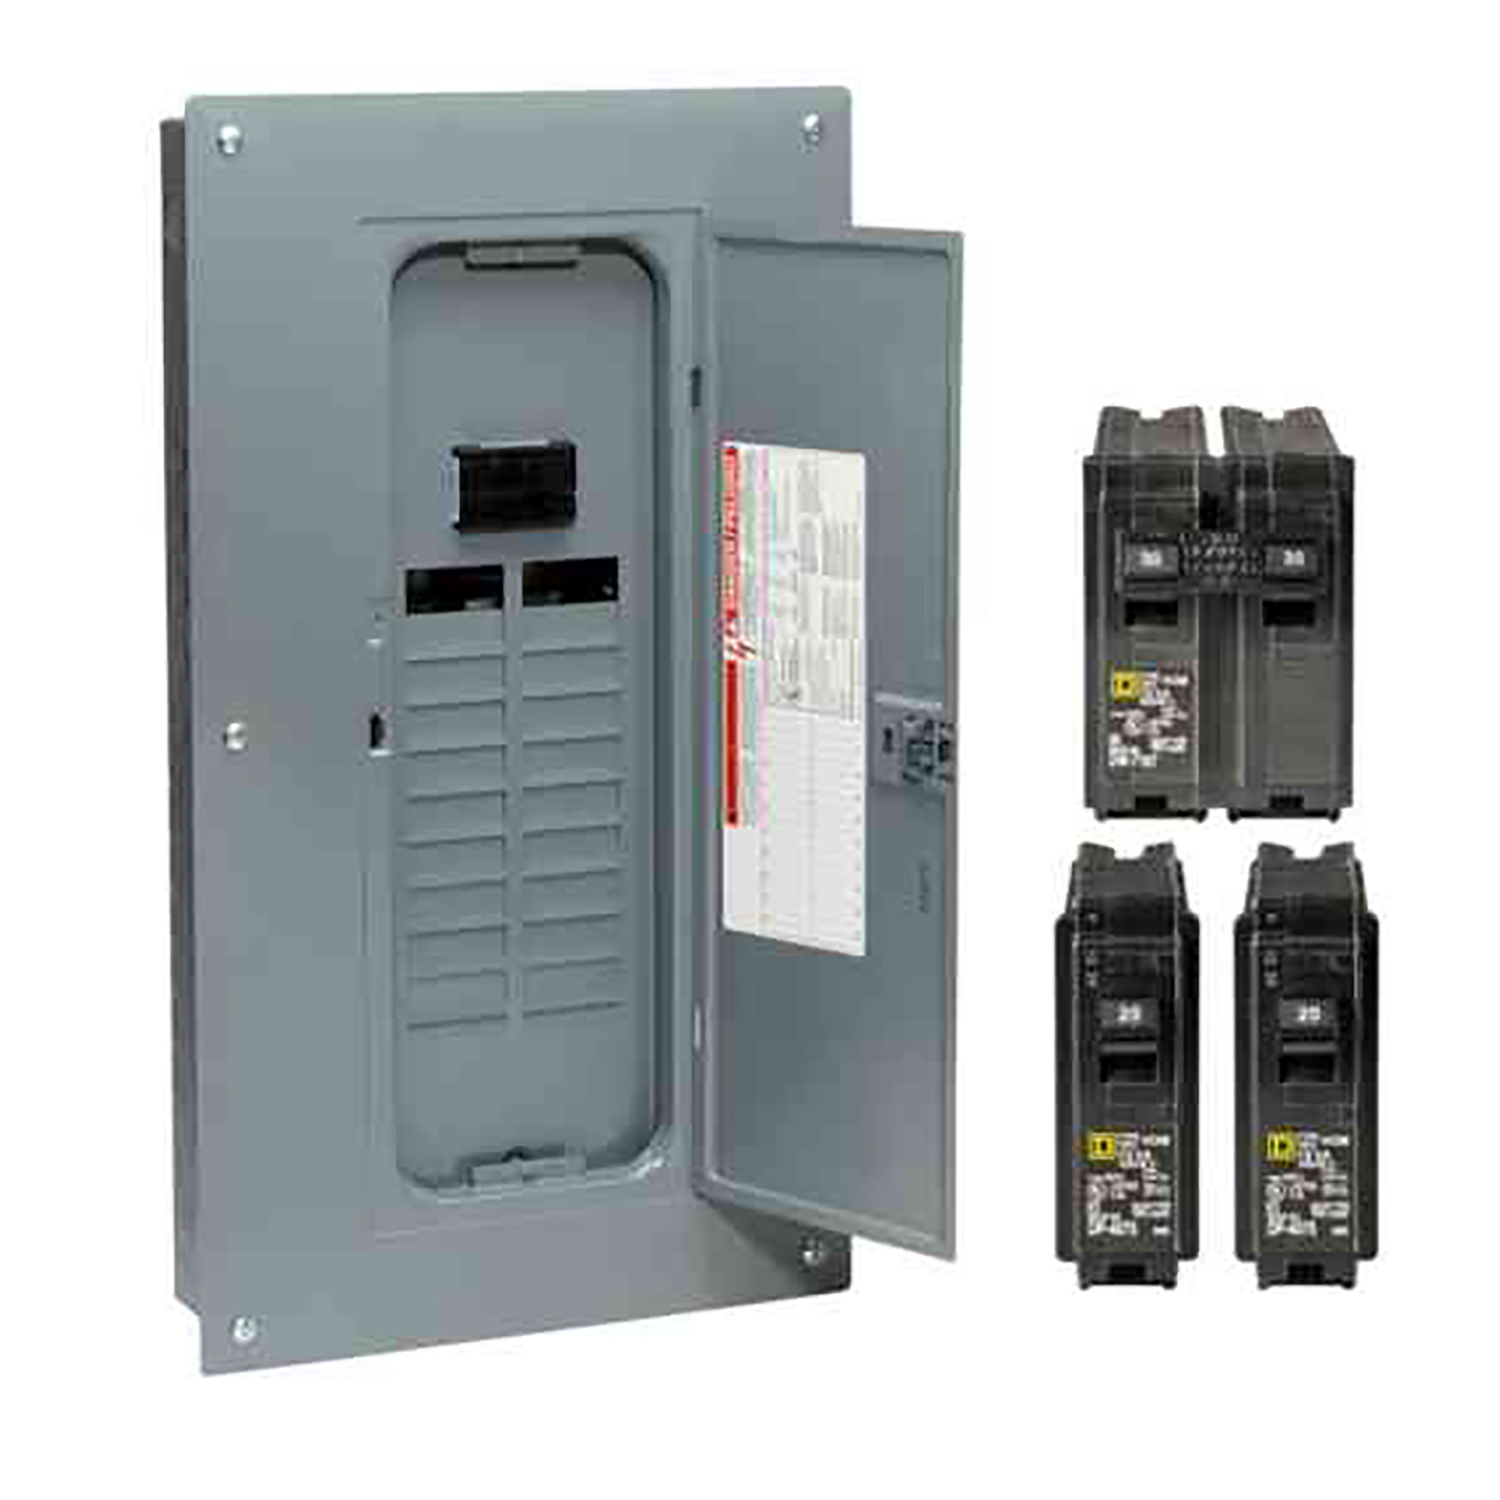 Square D Fuse Box Latch Block And Schematic Diagrams 15a 1p Qo Circuit Breaker Rona Homeline 100 Amps 120 240 Volt 20 Space 40 Circuits Rh Acehardware Com